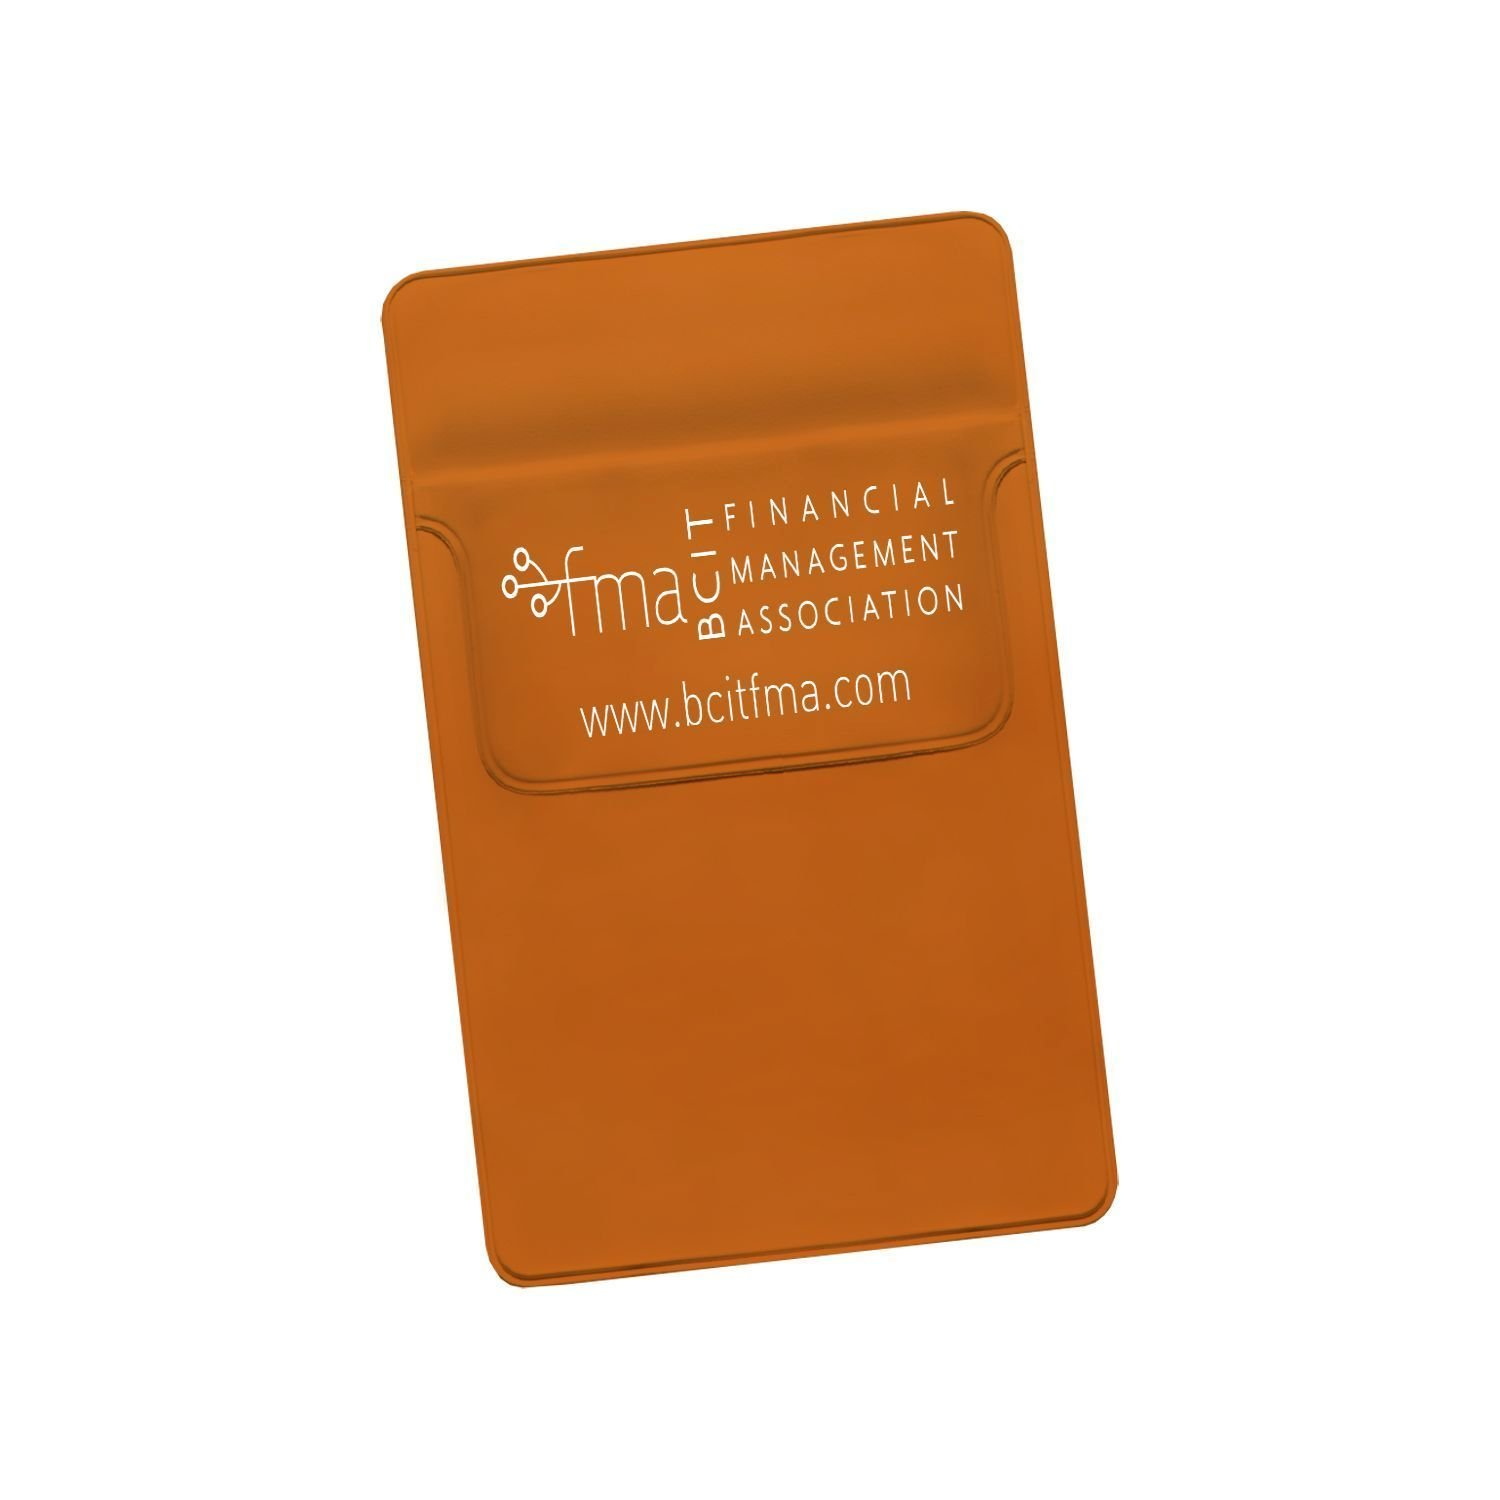 Promos With Imprint Personalized Pocket Protector 1 3/4 Flap -300 per Package- Bulk